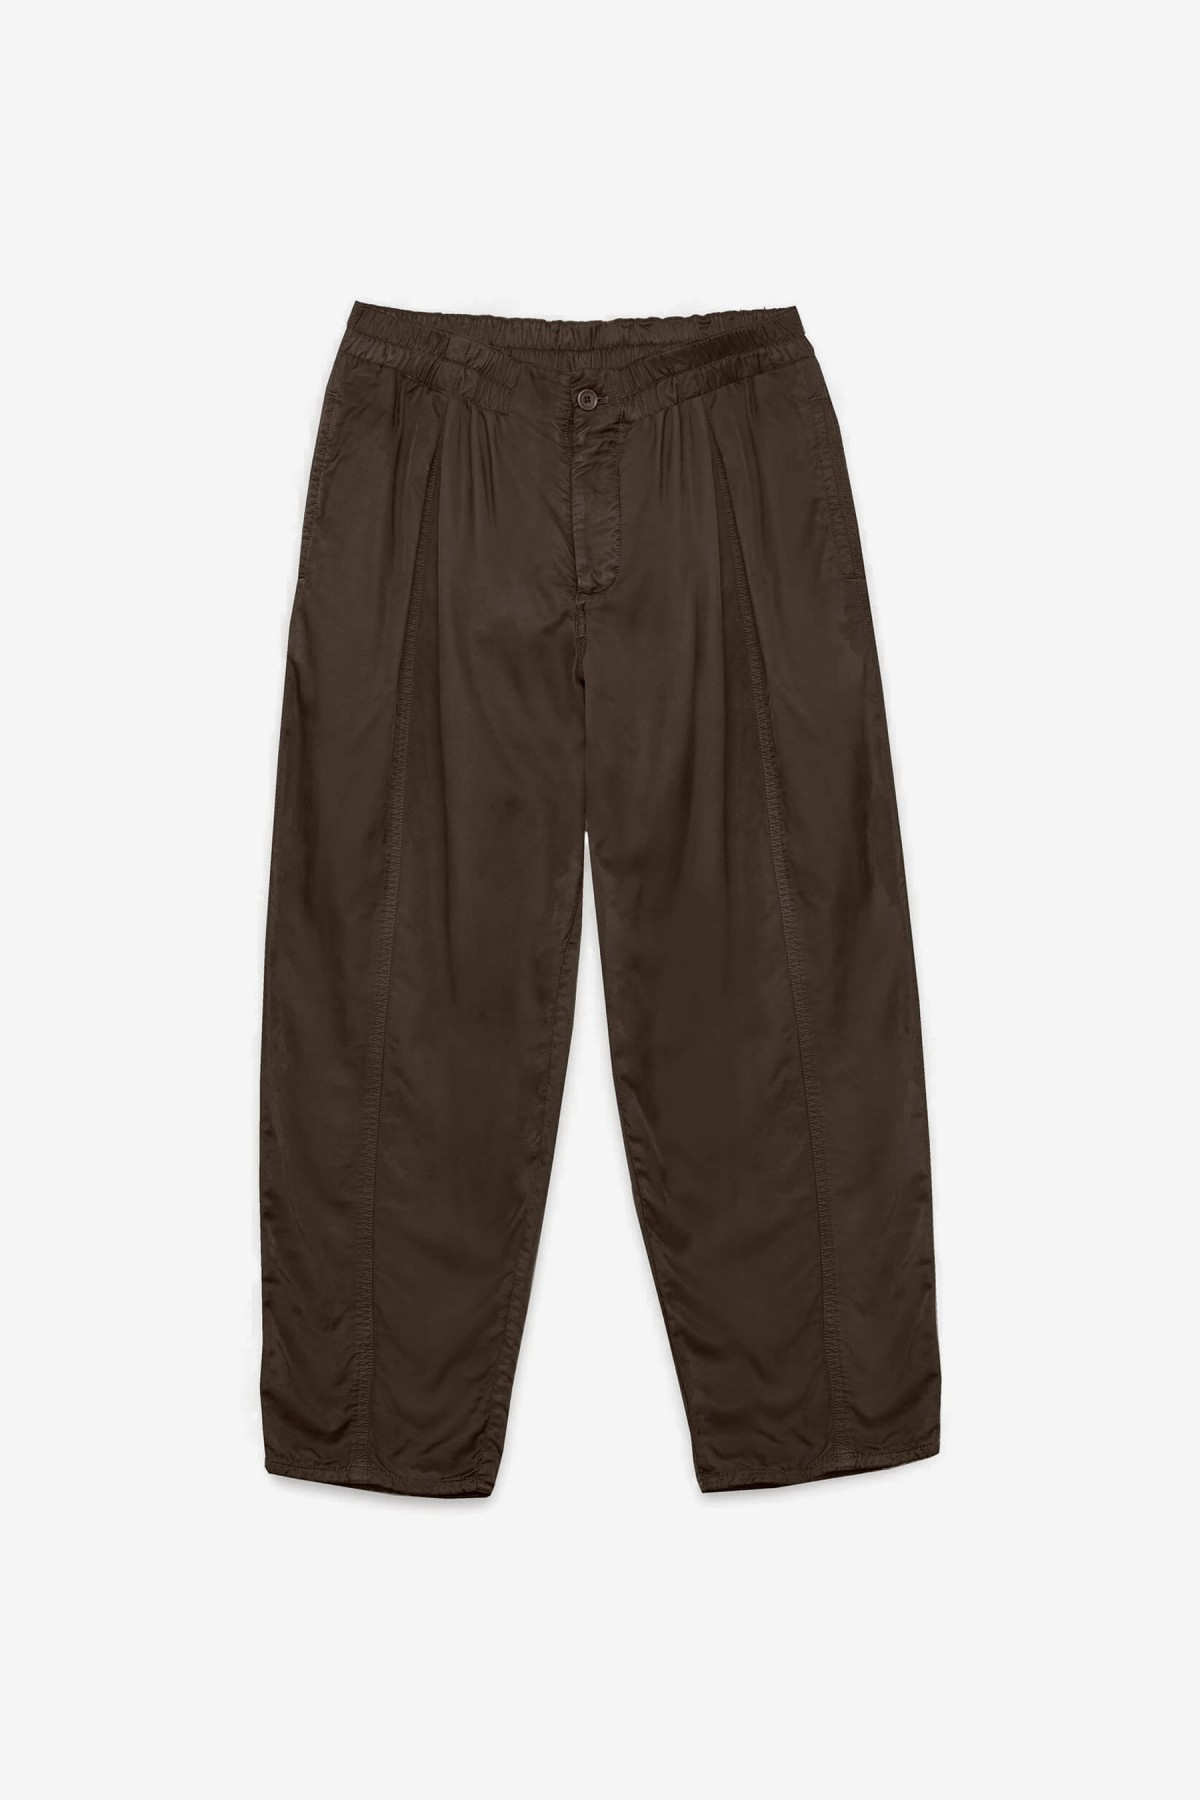 YMC You Must Create Sylvian Trousers in Dark Olive